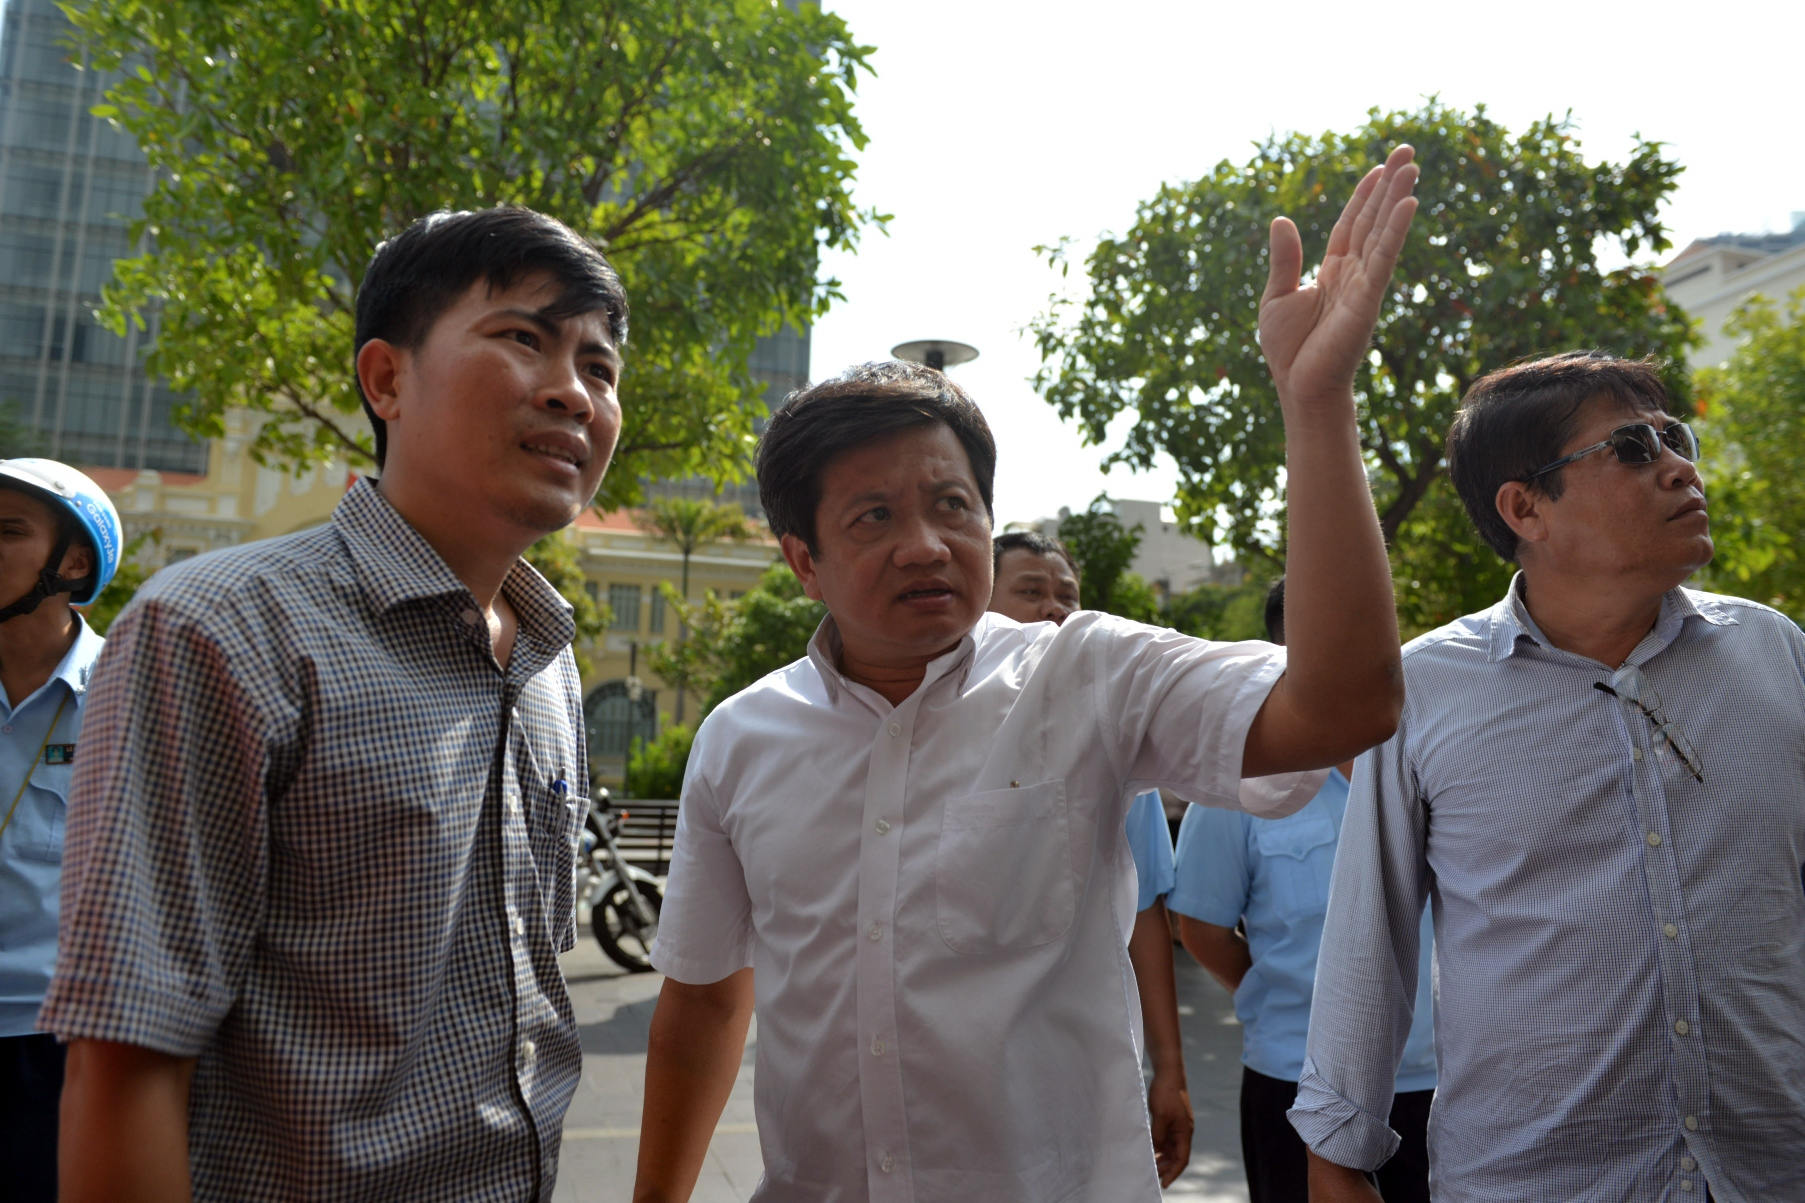 Ho Chi Minh City 'sidewalk-clearing' icon Doan Ngoc Hai resigns from all positions